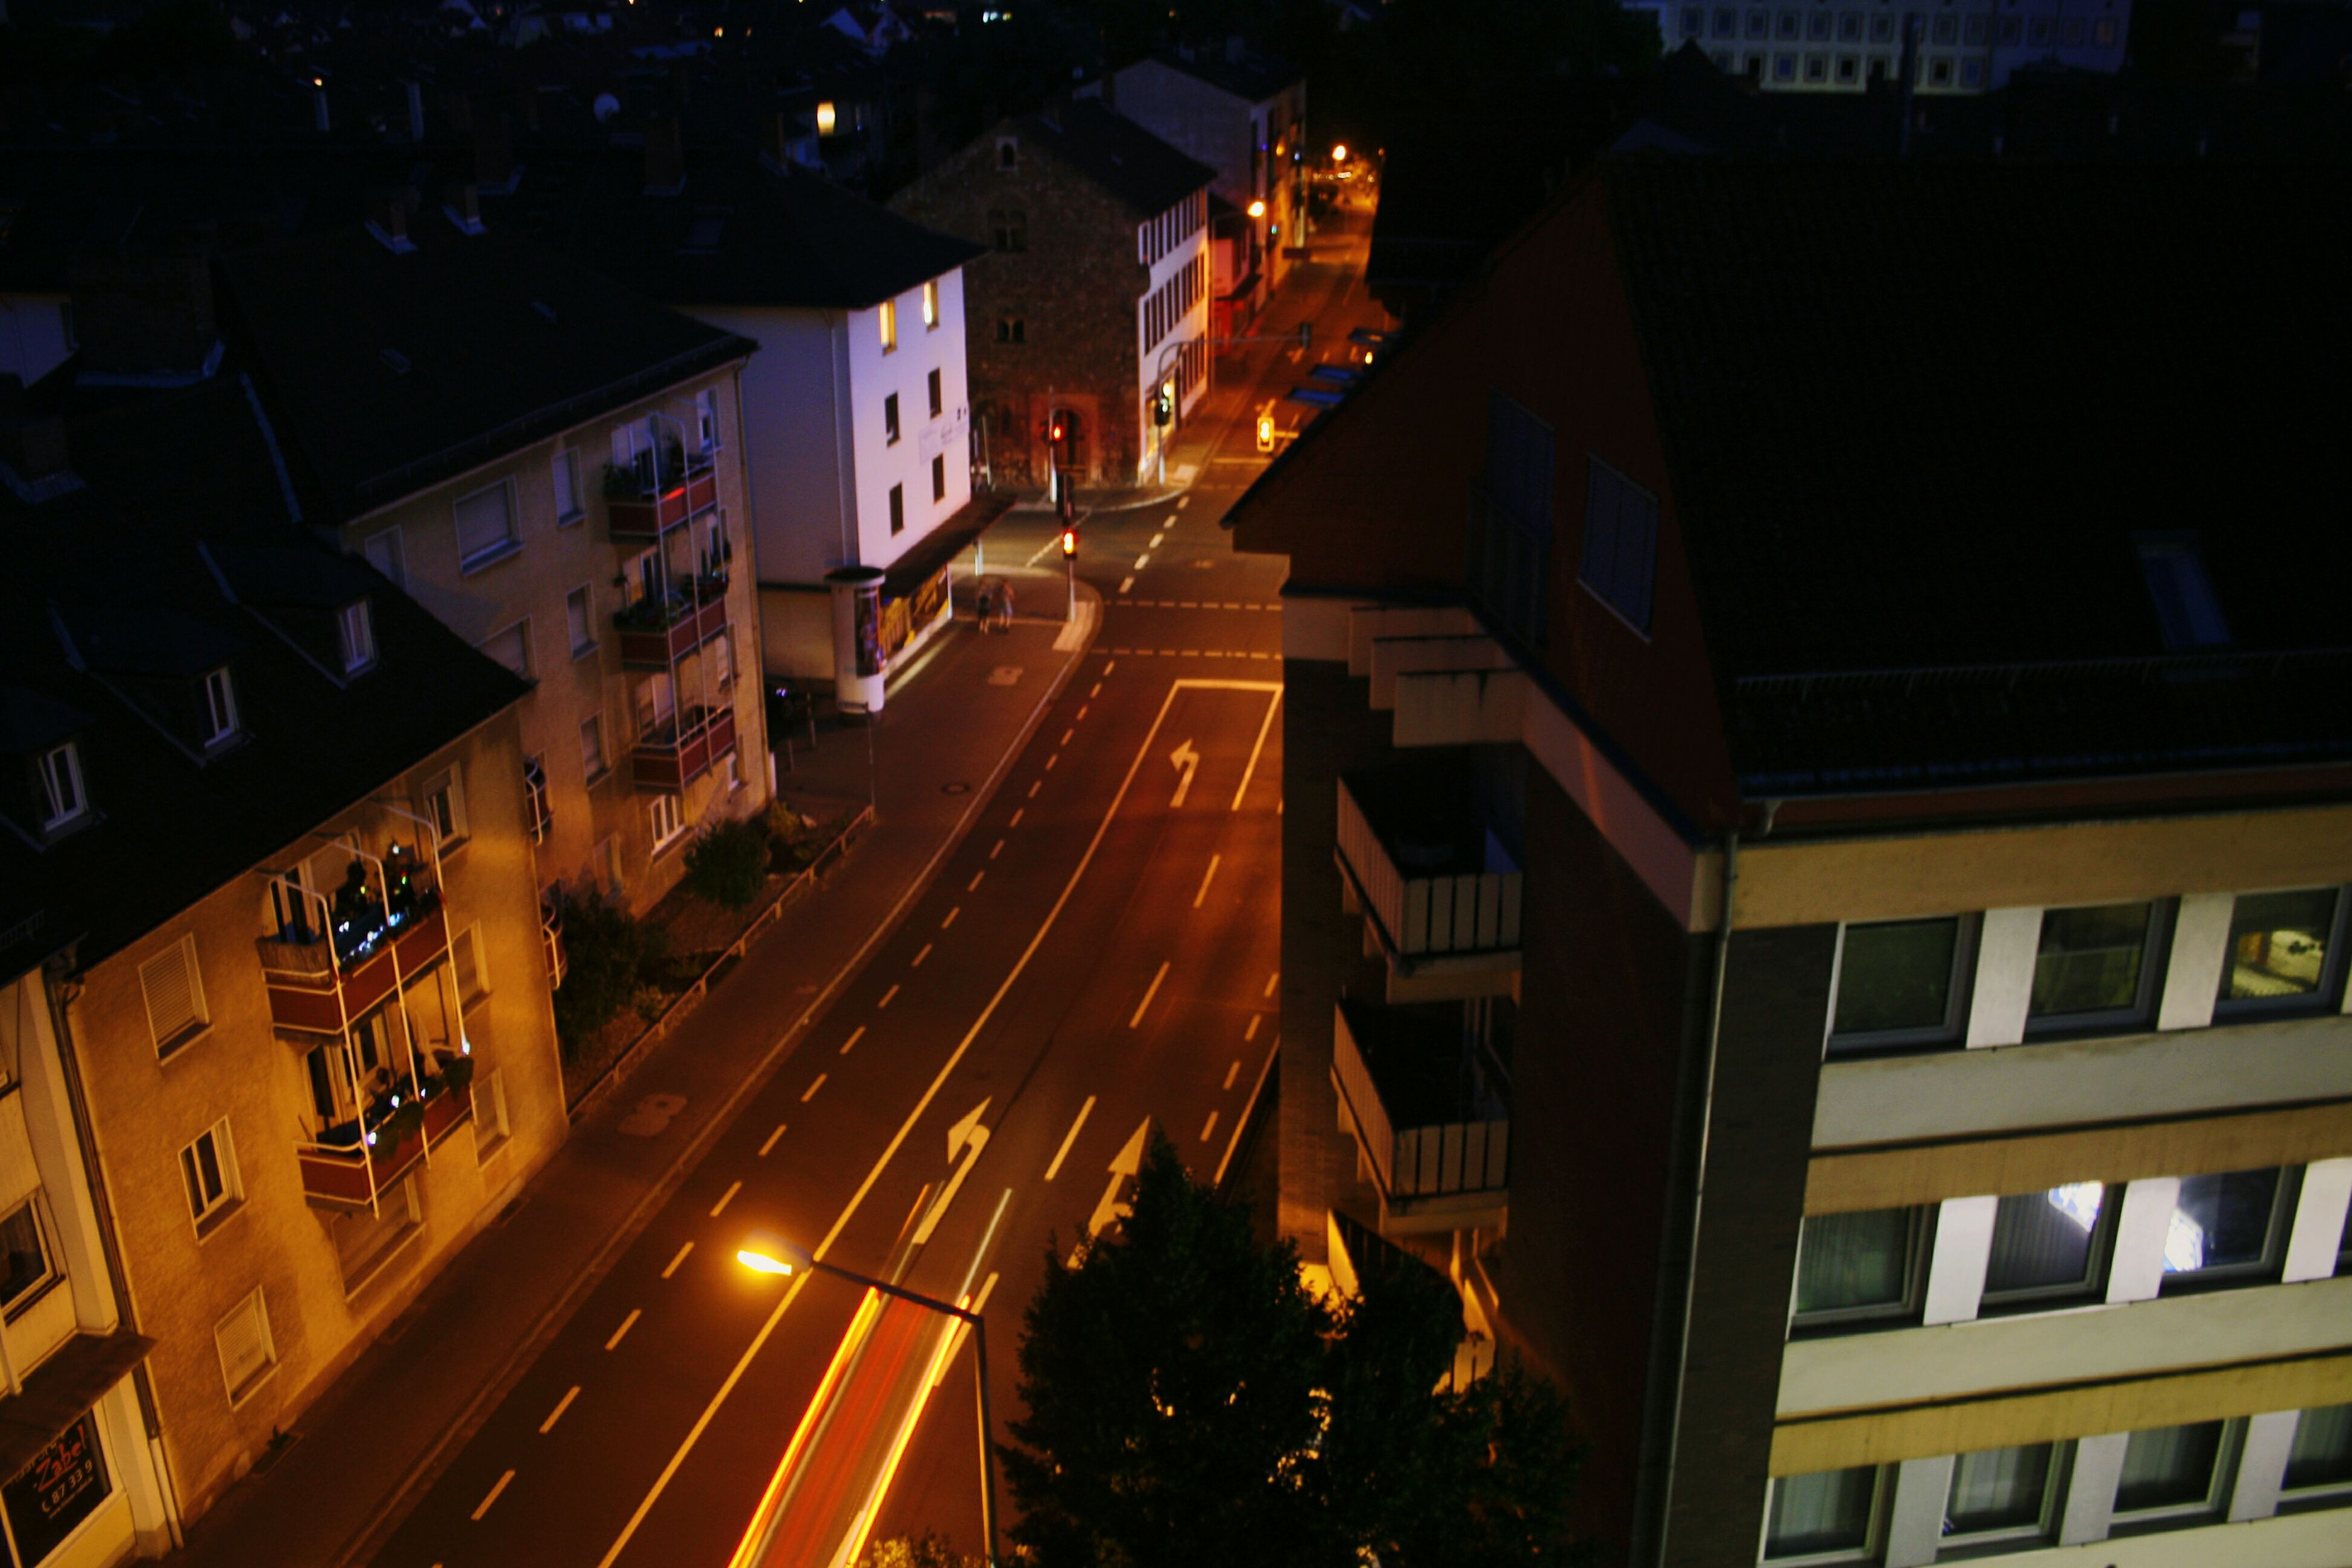 night, illuminated, building exterior, city, architecture, high angle view, built structure, street, city life, transportation, road, city street, residential building, residential structure, car, building, outdoors, incidental people, traffic, land vehicle